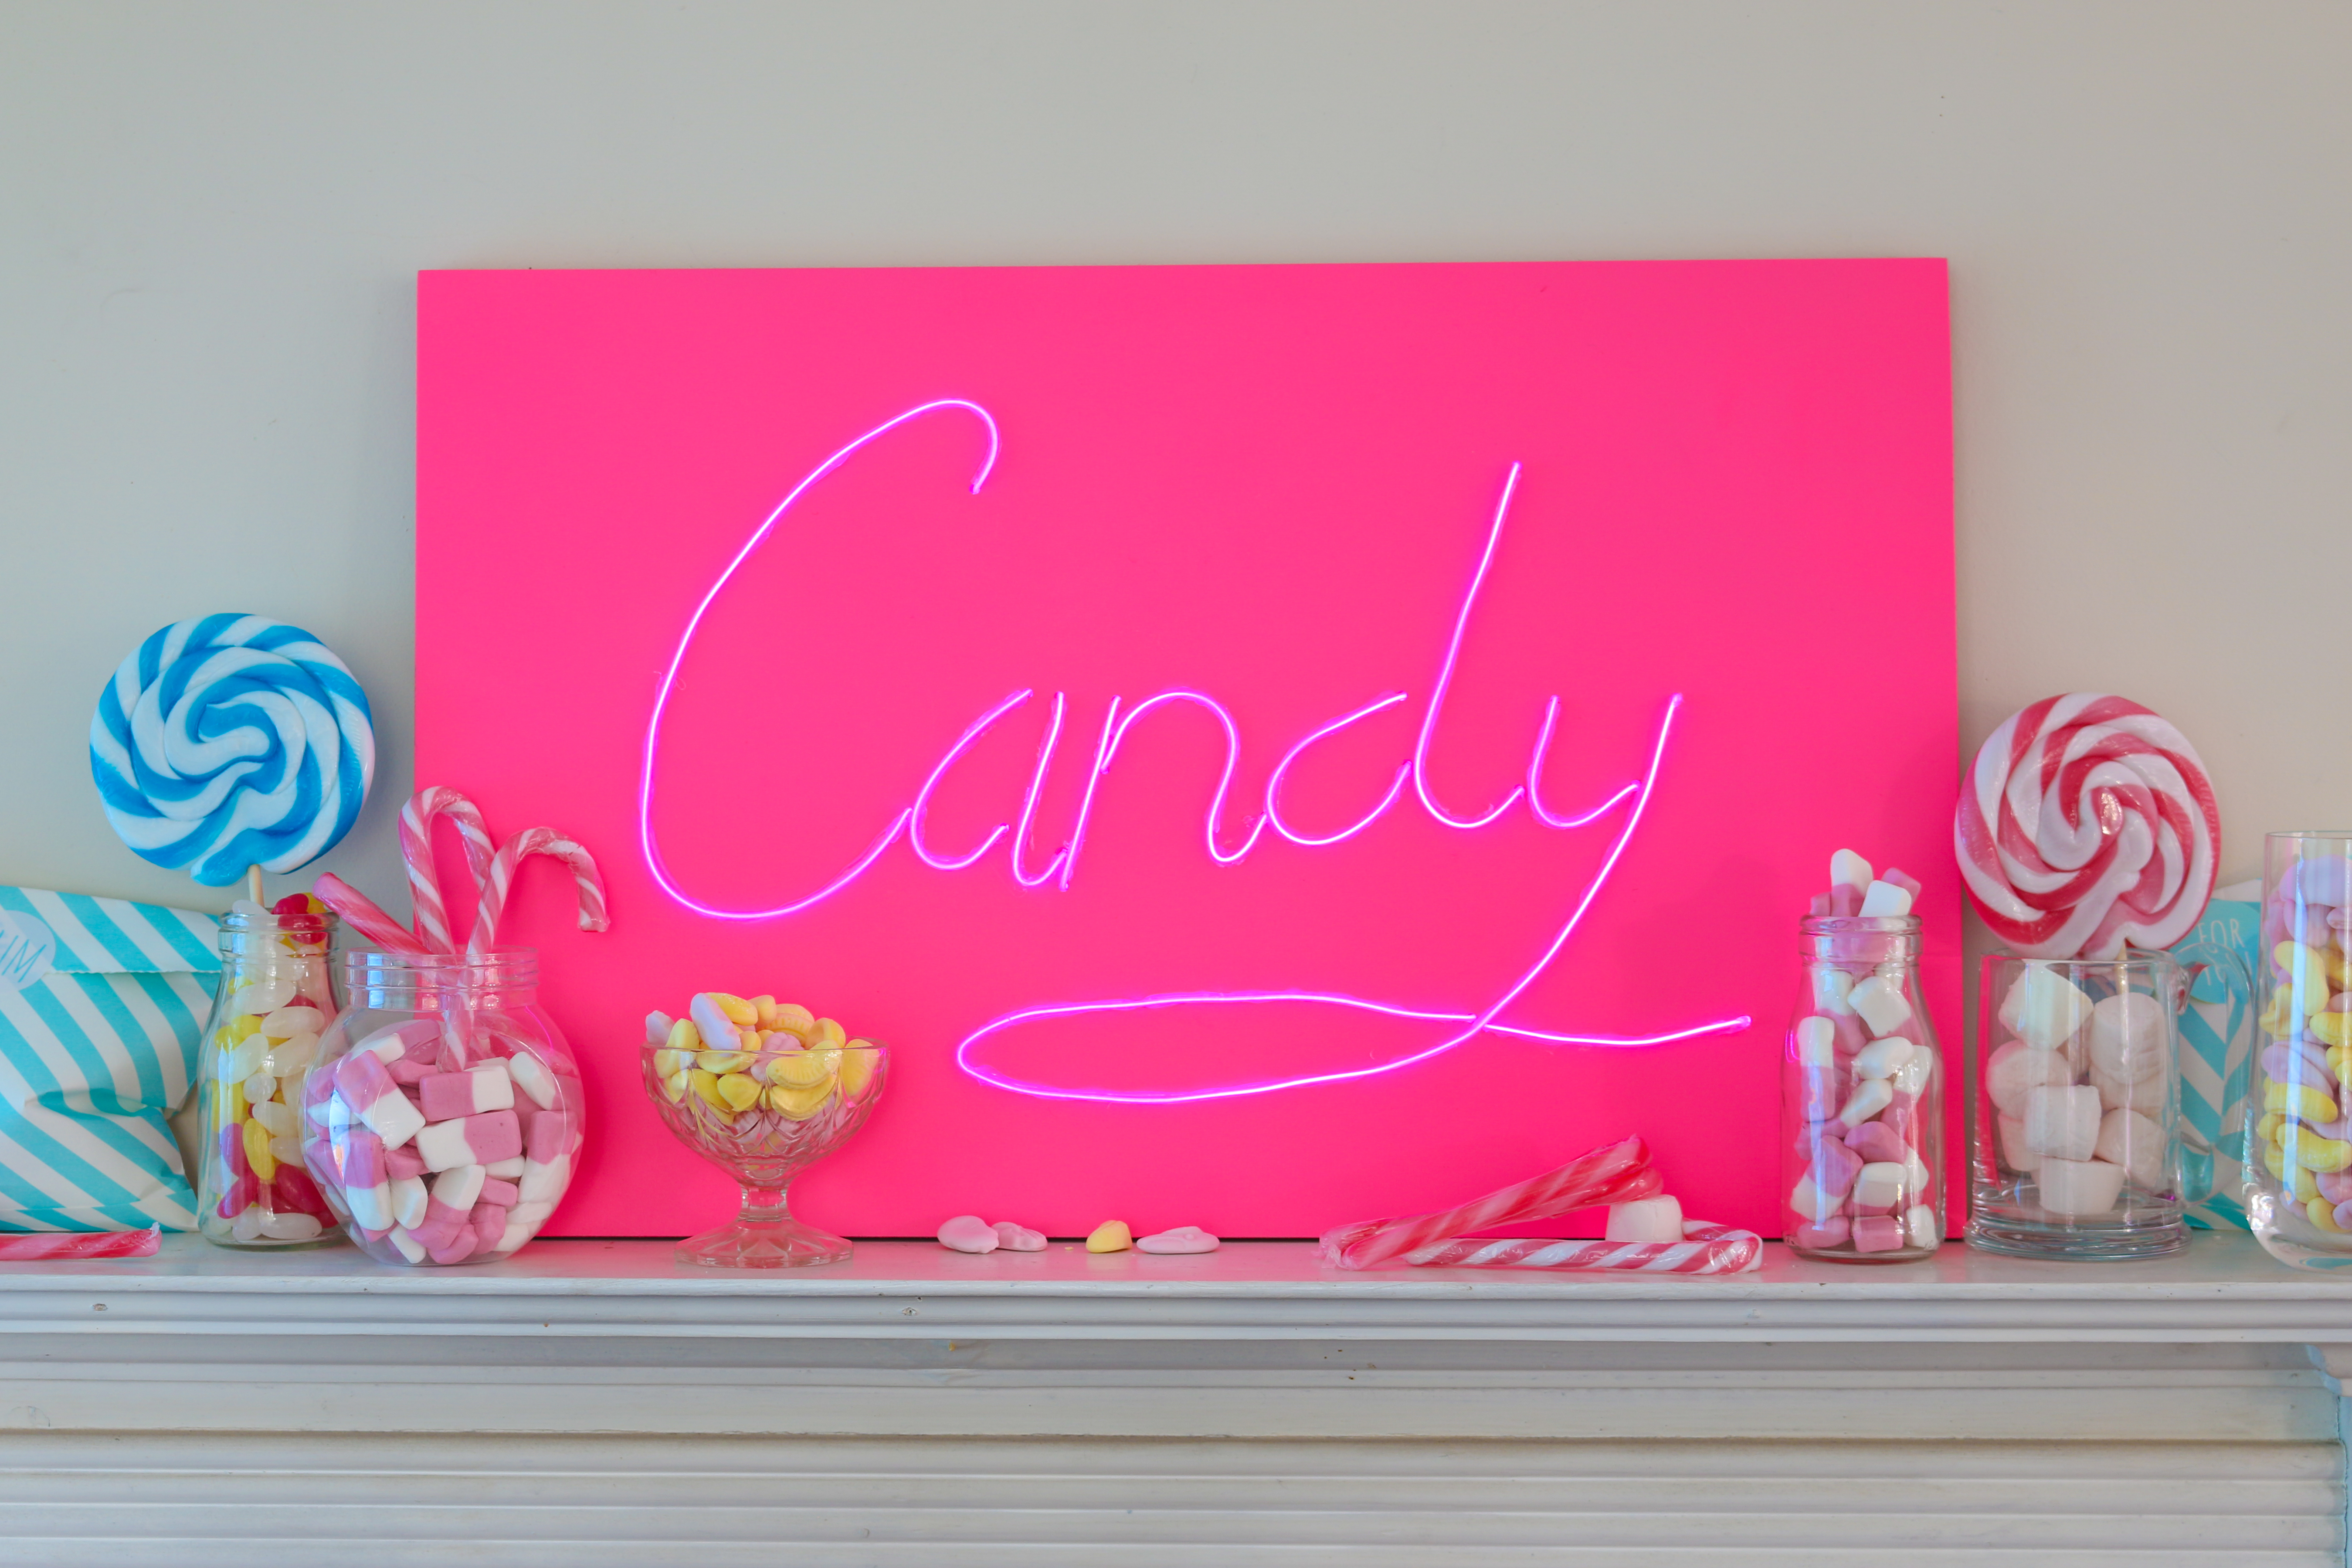 Diy neon sign for parties weddings party hen do birthday party or even for the upcoming valentines day give it a try i bet youll impress yourself with your neon sign making skills solutioingenieria Choice Image